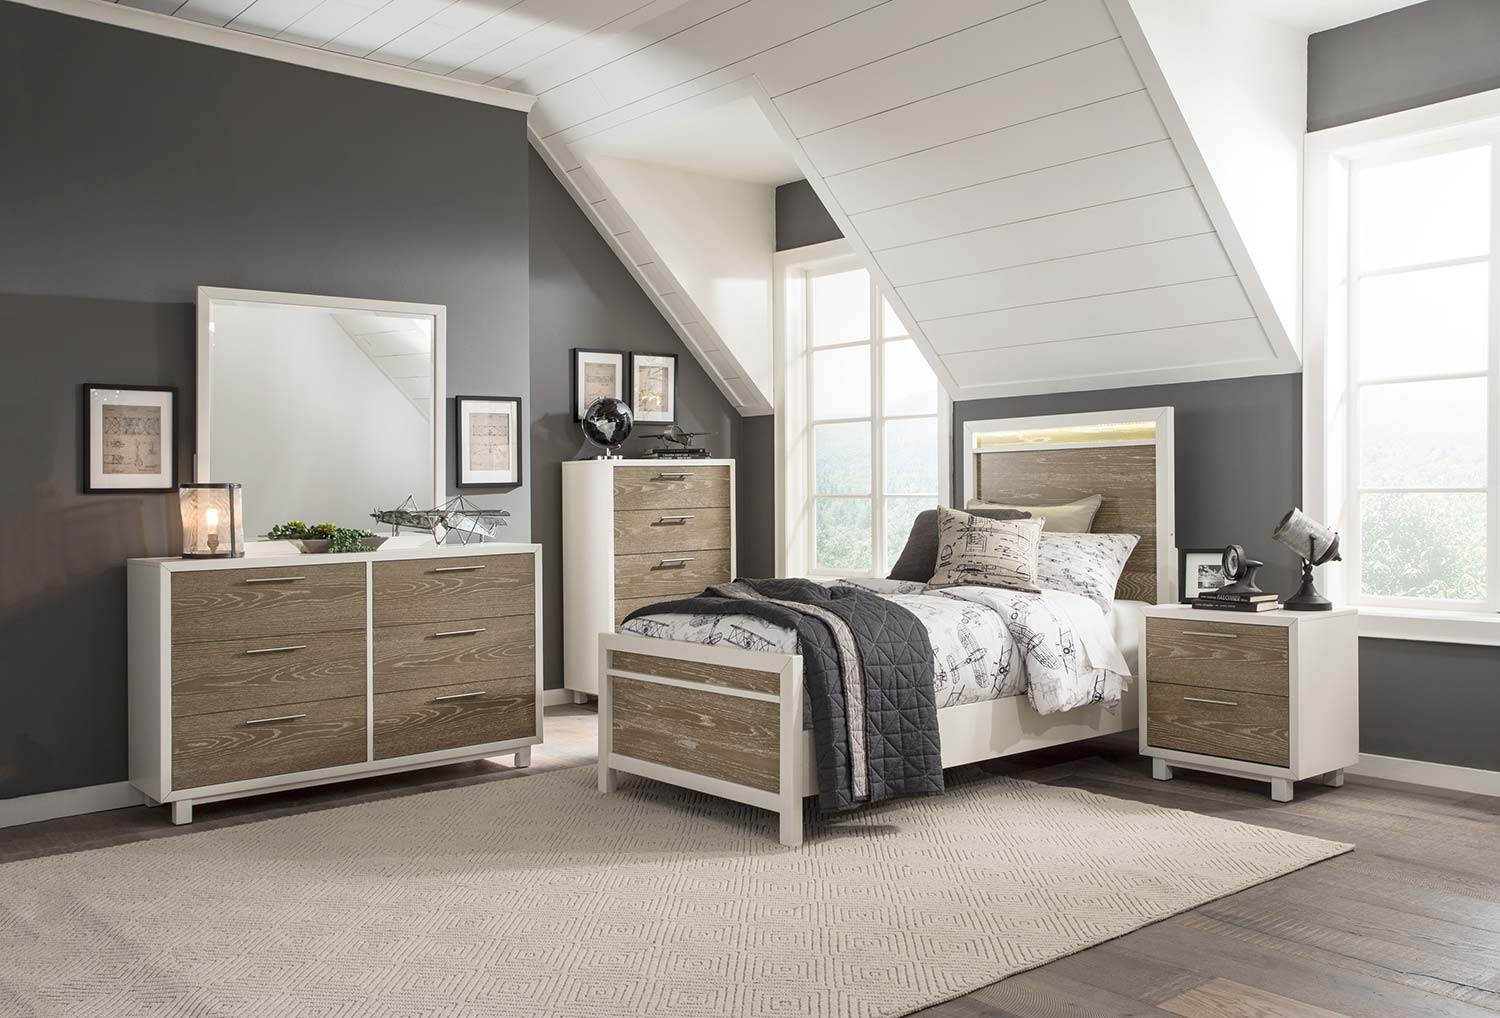 Homelegance Renly LED Bedroom Set - Natural Finish of Oak Veneer with White Framing